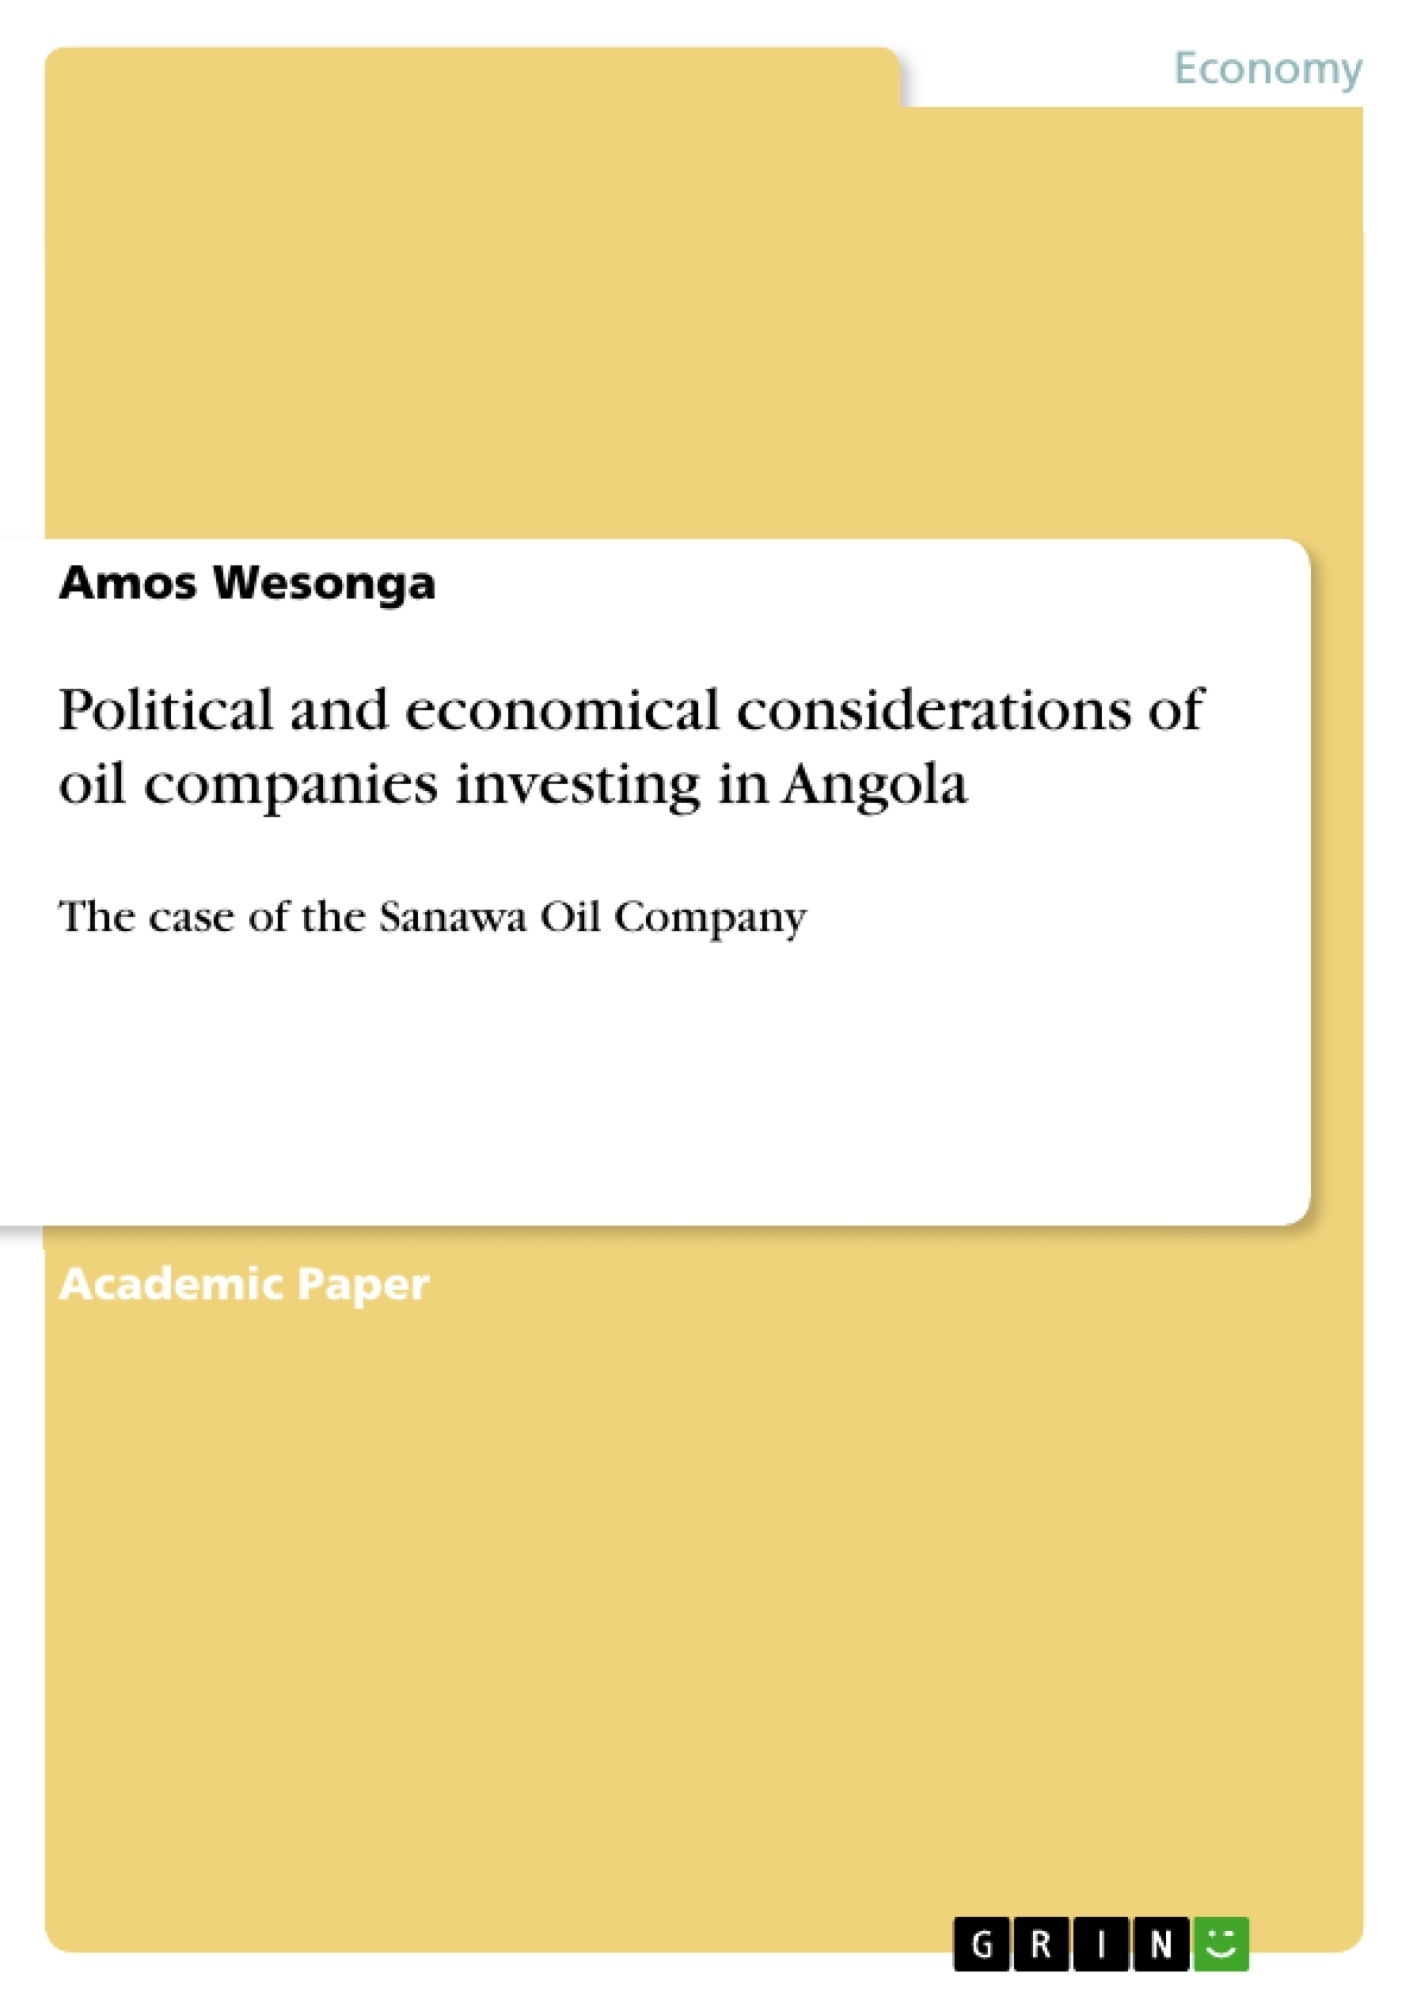 Title: Political and economical considerations of oil companies investing in Angola